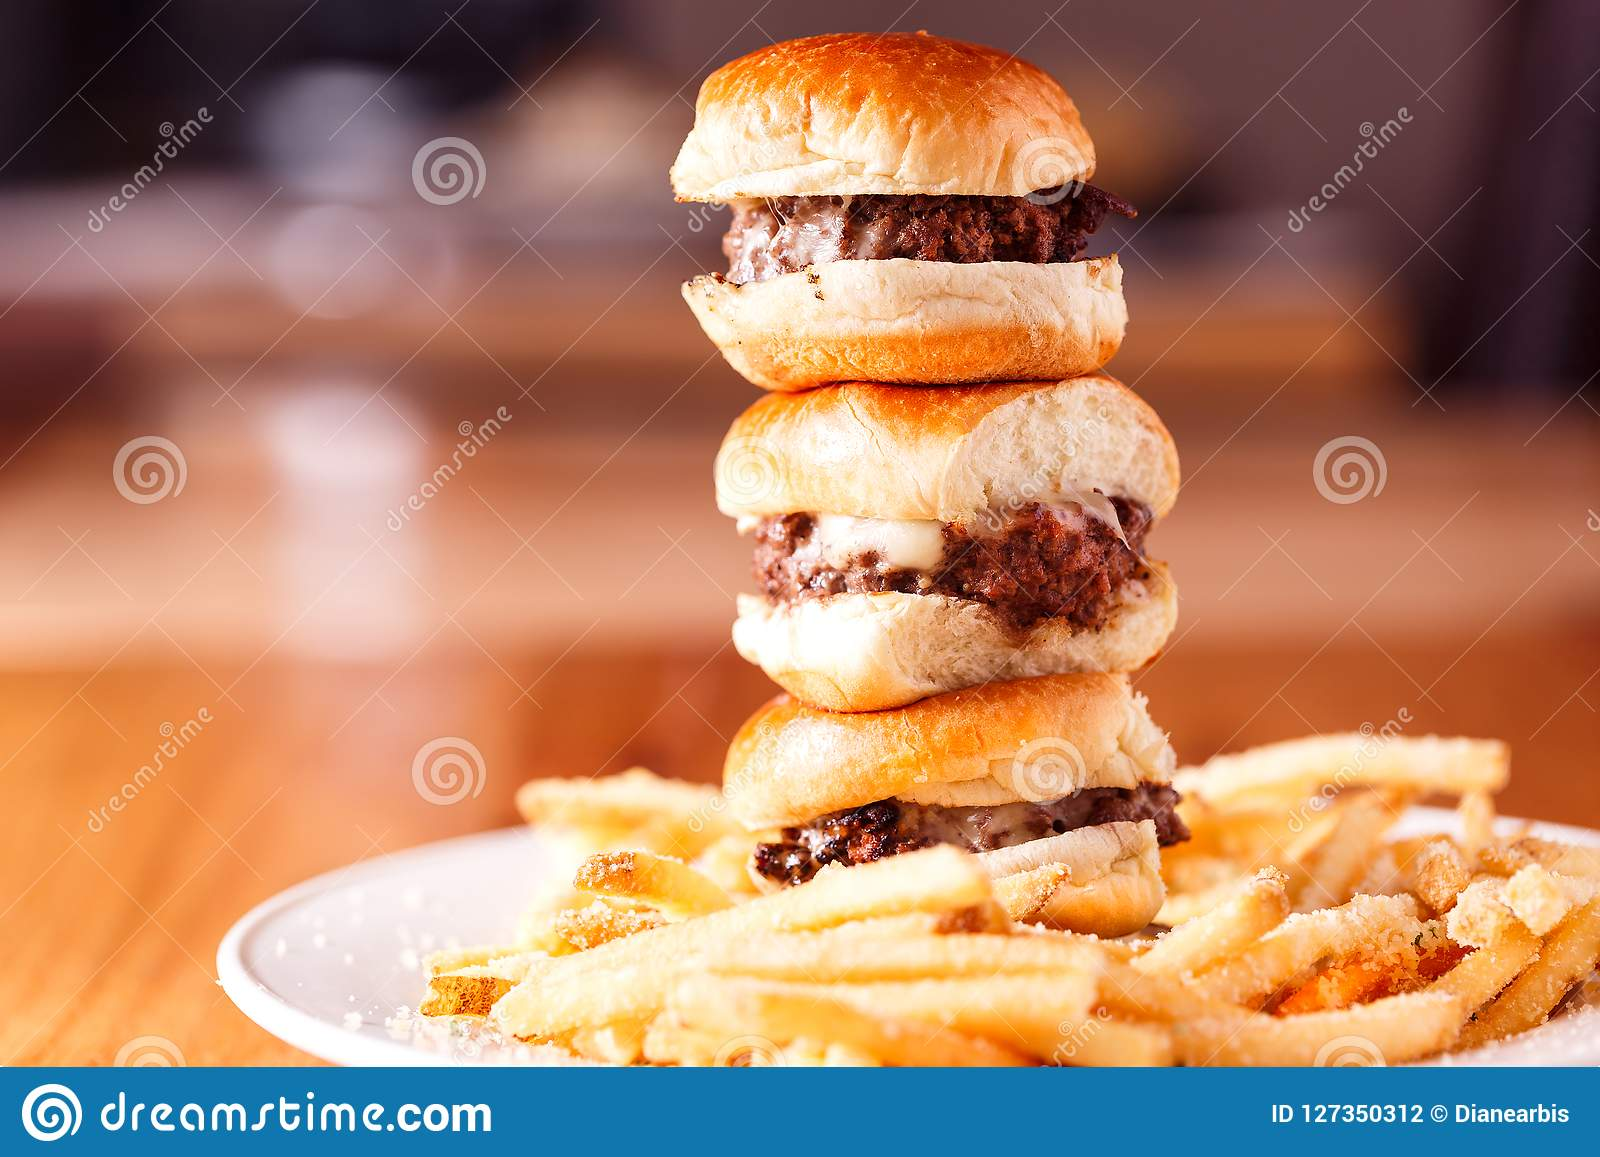 Stack of mini cheeseburgers with fries